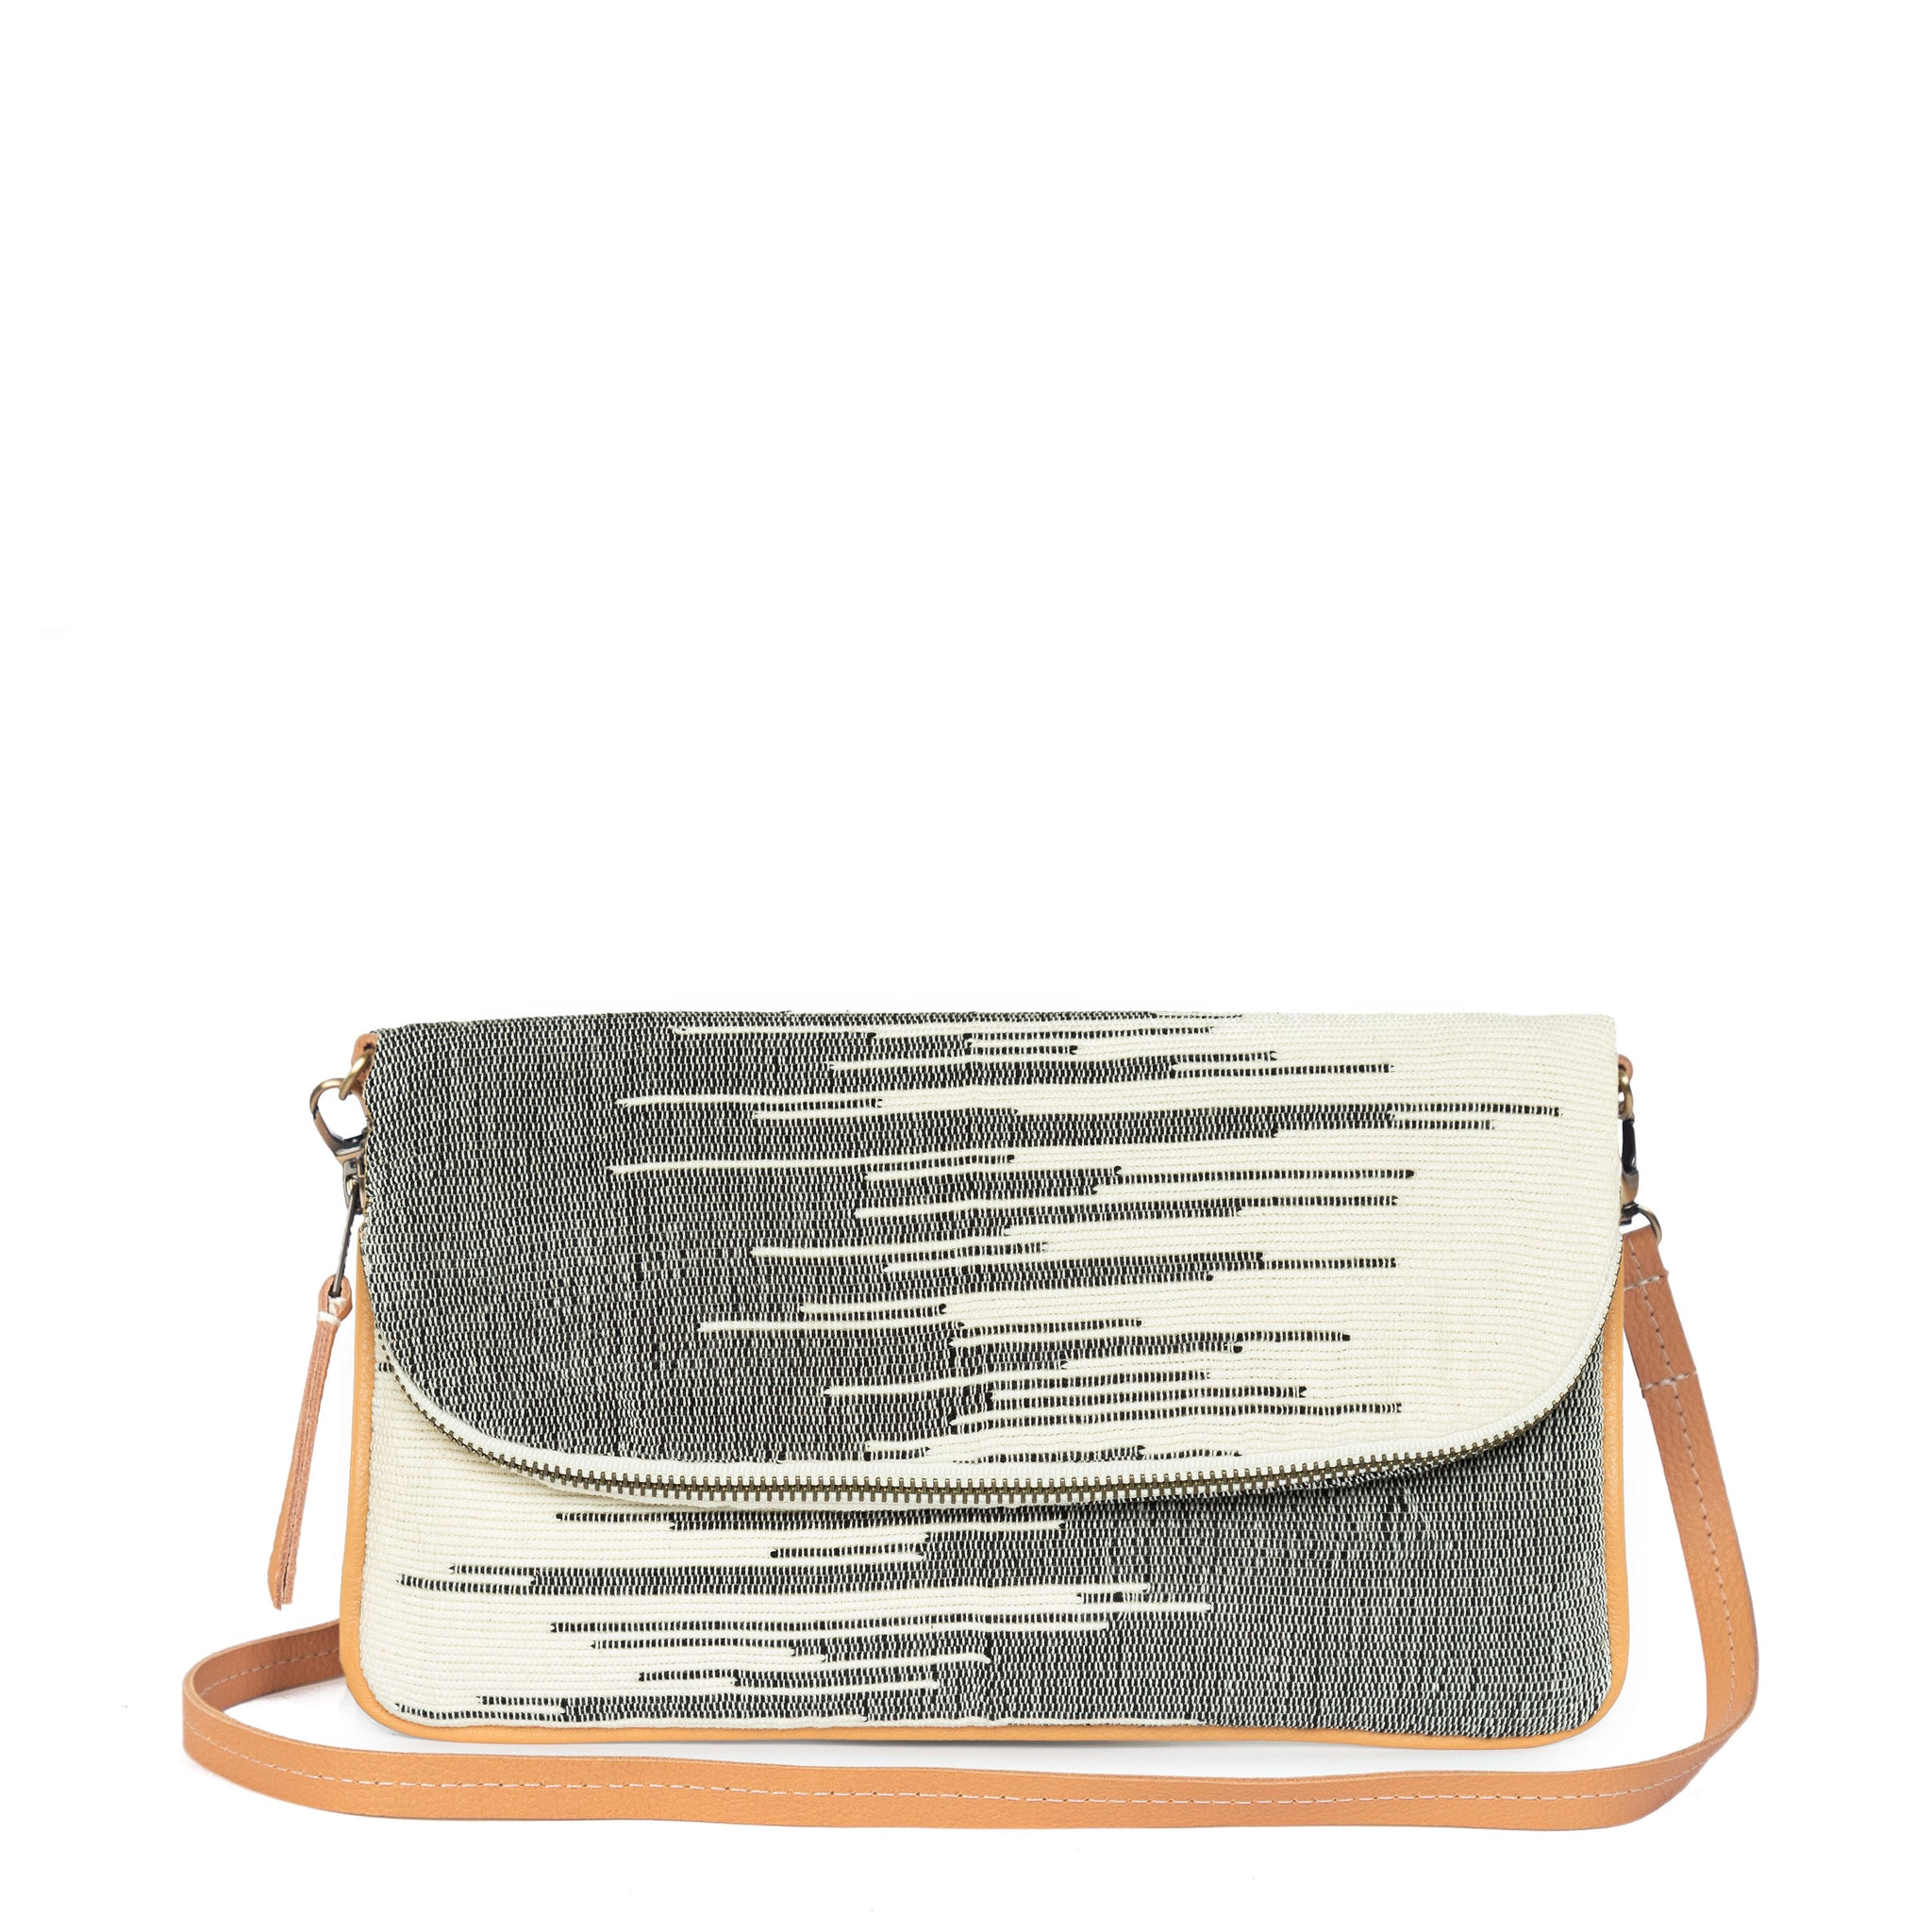 Hand woven Paulina Crossbody - Ethical Shopping at Mercado Global